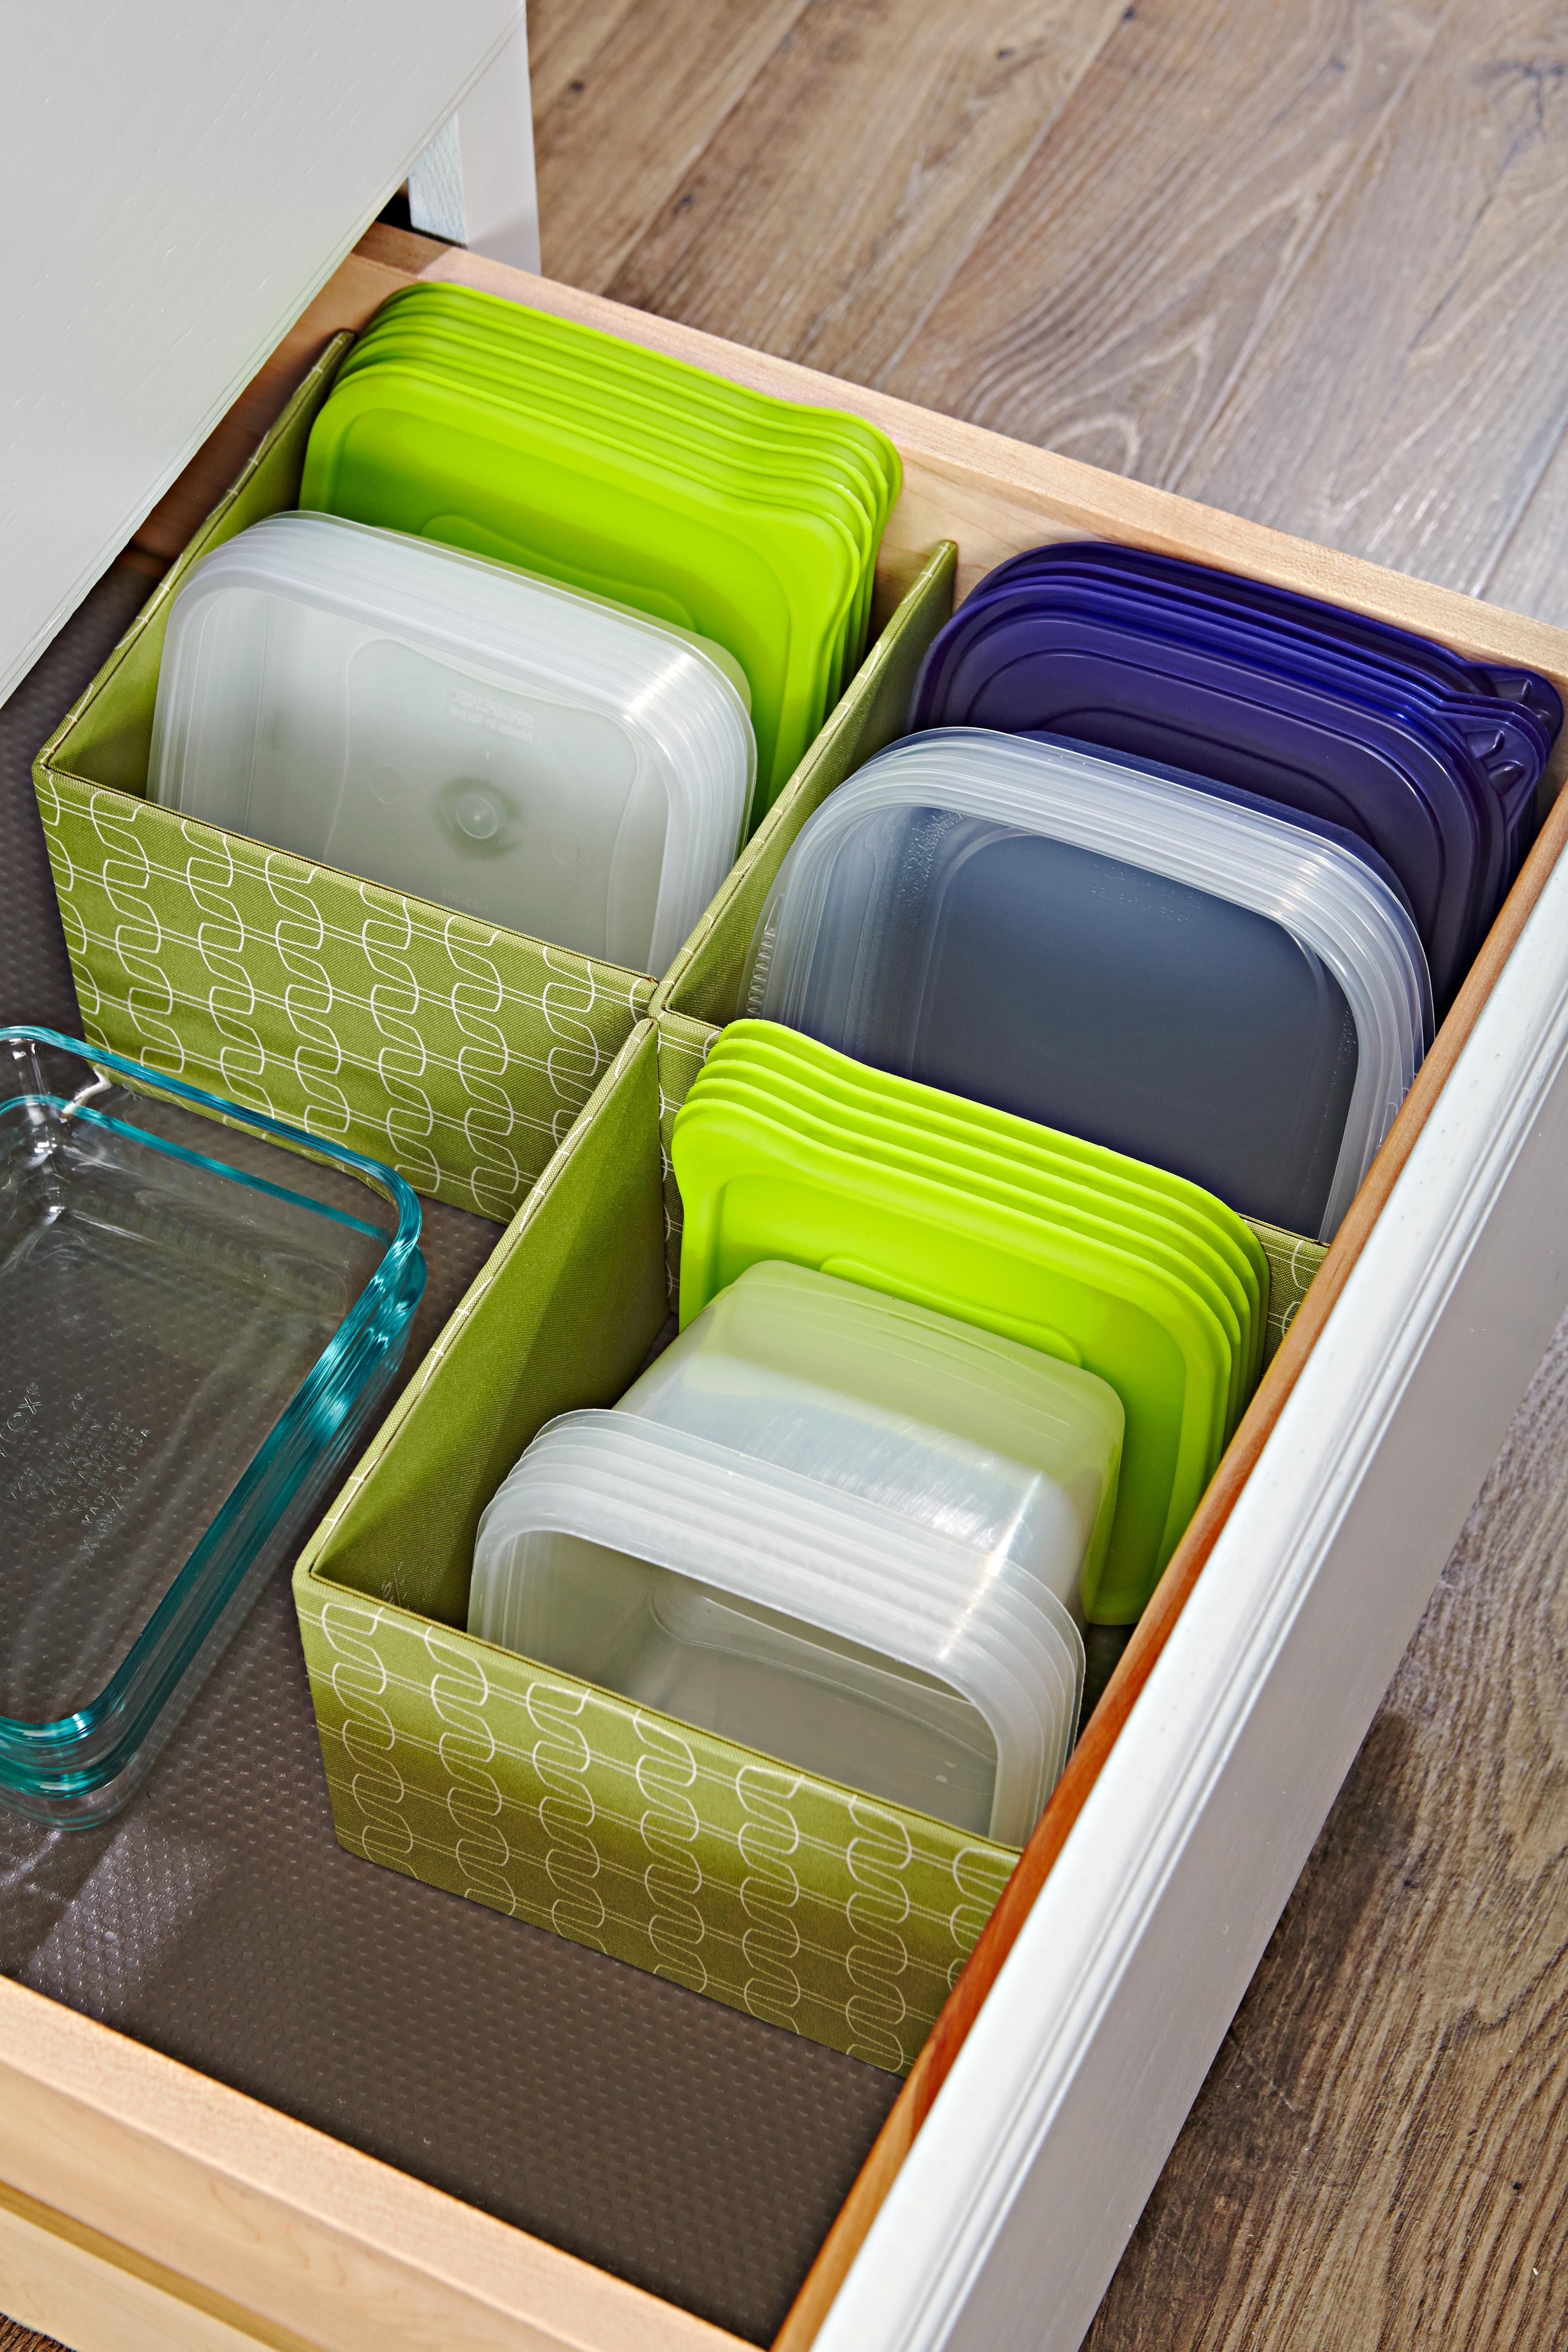 10 Genius Solutions For Food Storage Containers In 2020 Diy Kitchen Storage Kitchen Storage Hacks Storage Hacks Diy